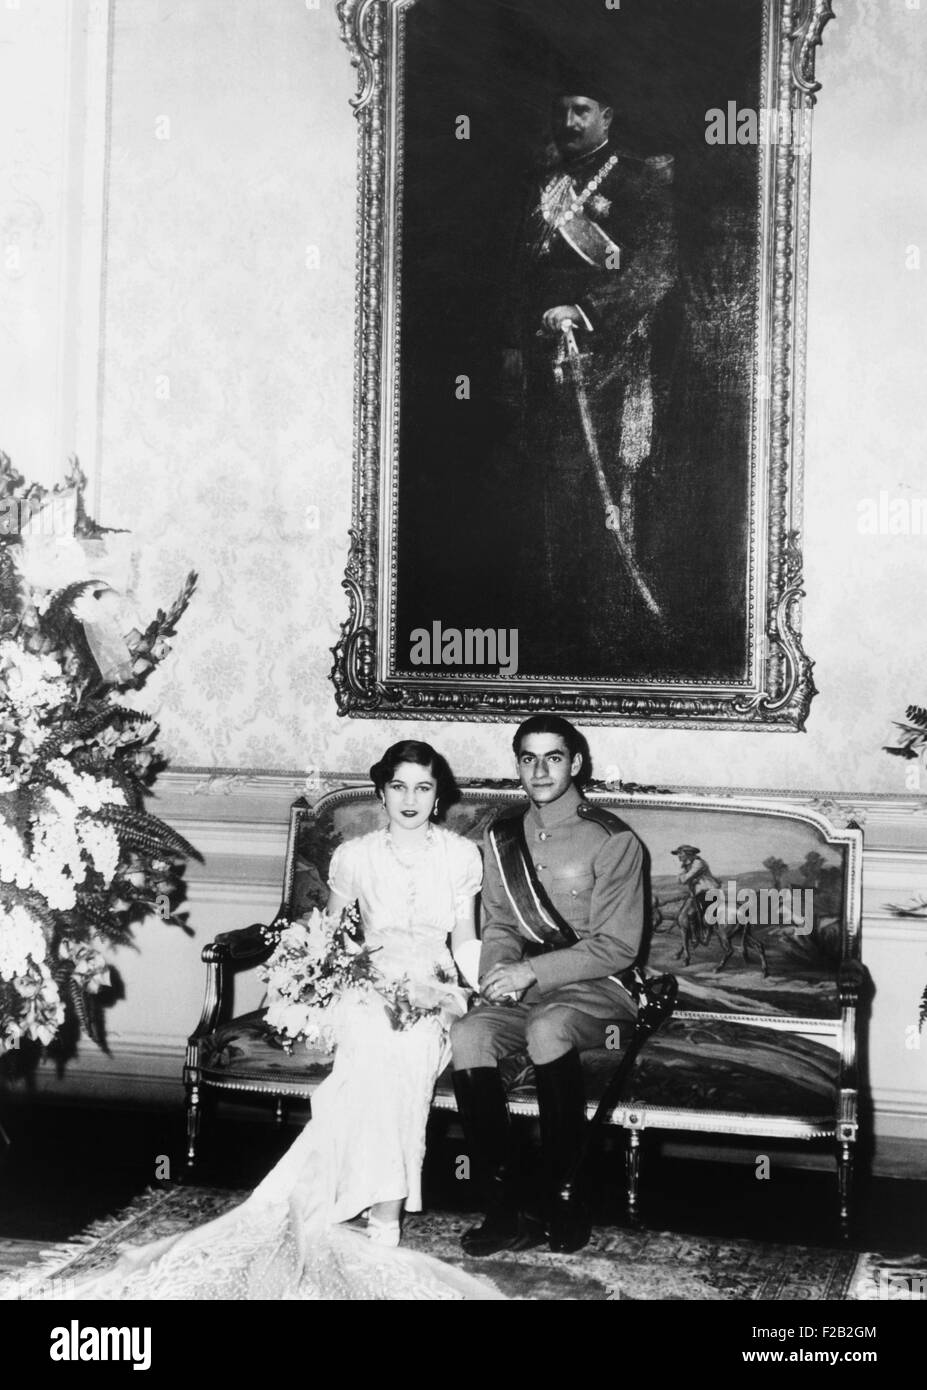 Crown Prince Mohammed Reza of Iran and his Egyptian bride, Princess Fawzia. She is the sister of King Farouk of - Stock Image